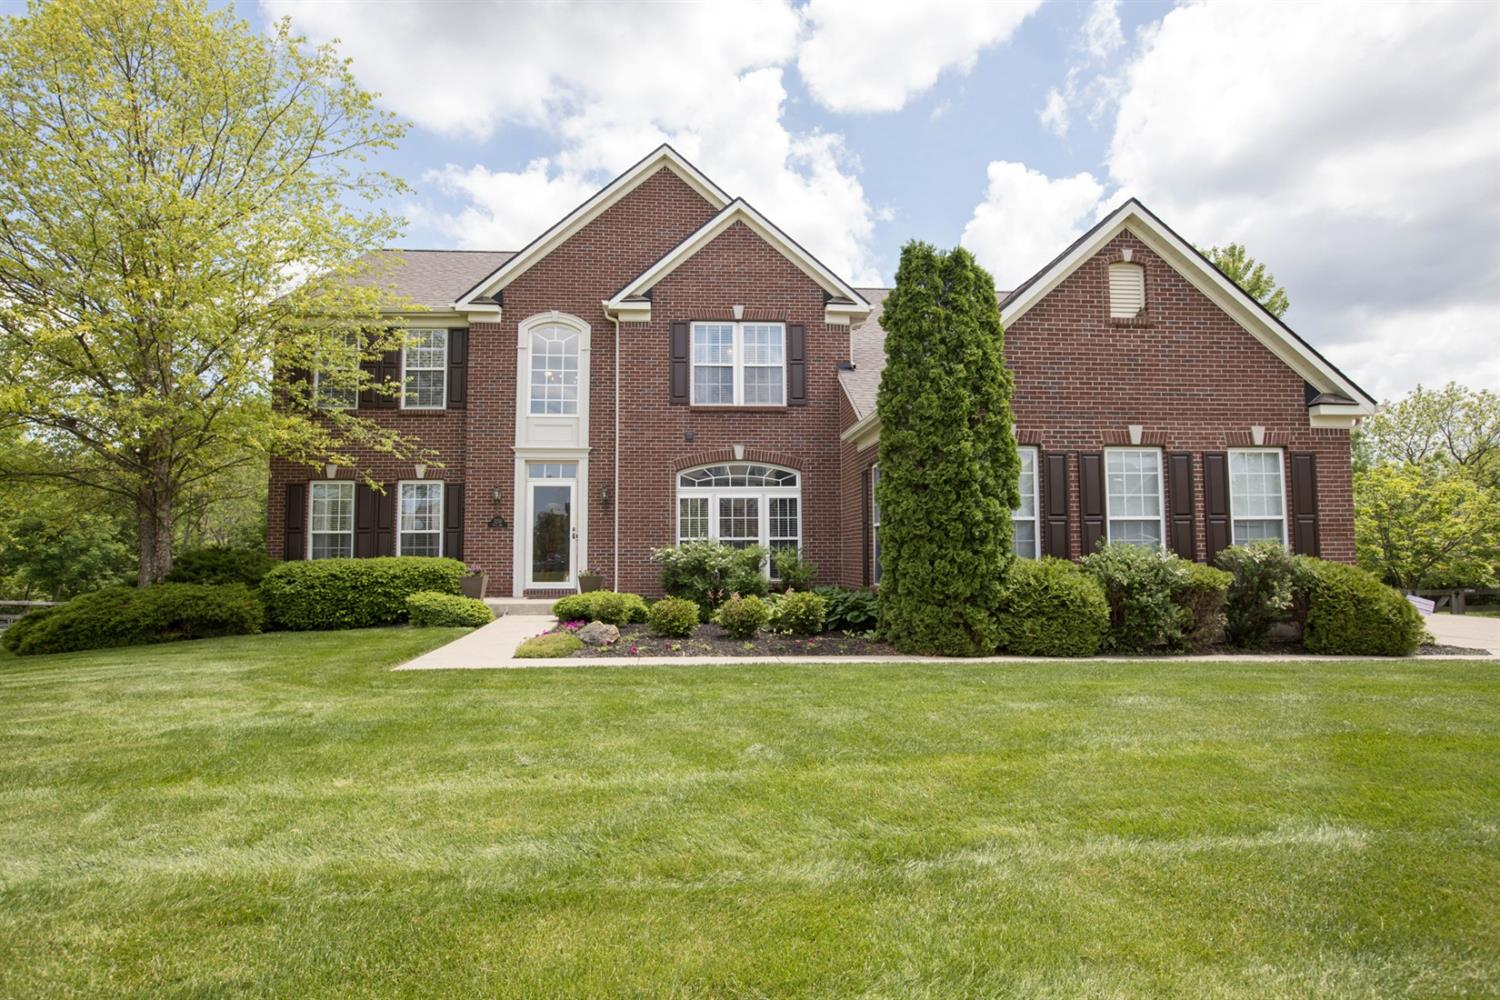 Property for sale at 5250 Poets Way, Liberty Twp,  Ohio 45011